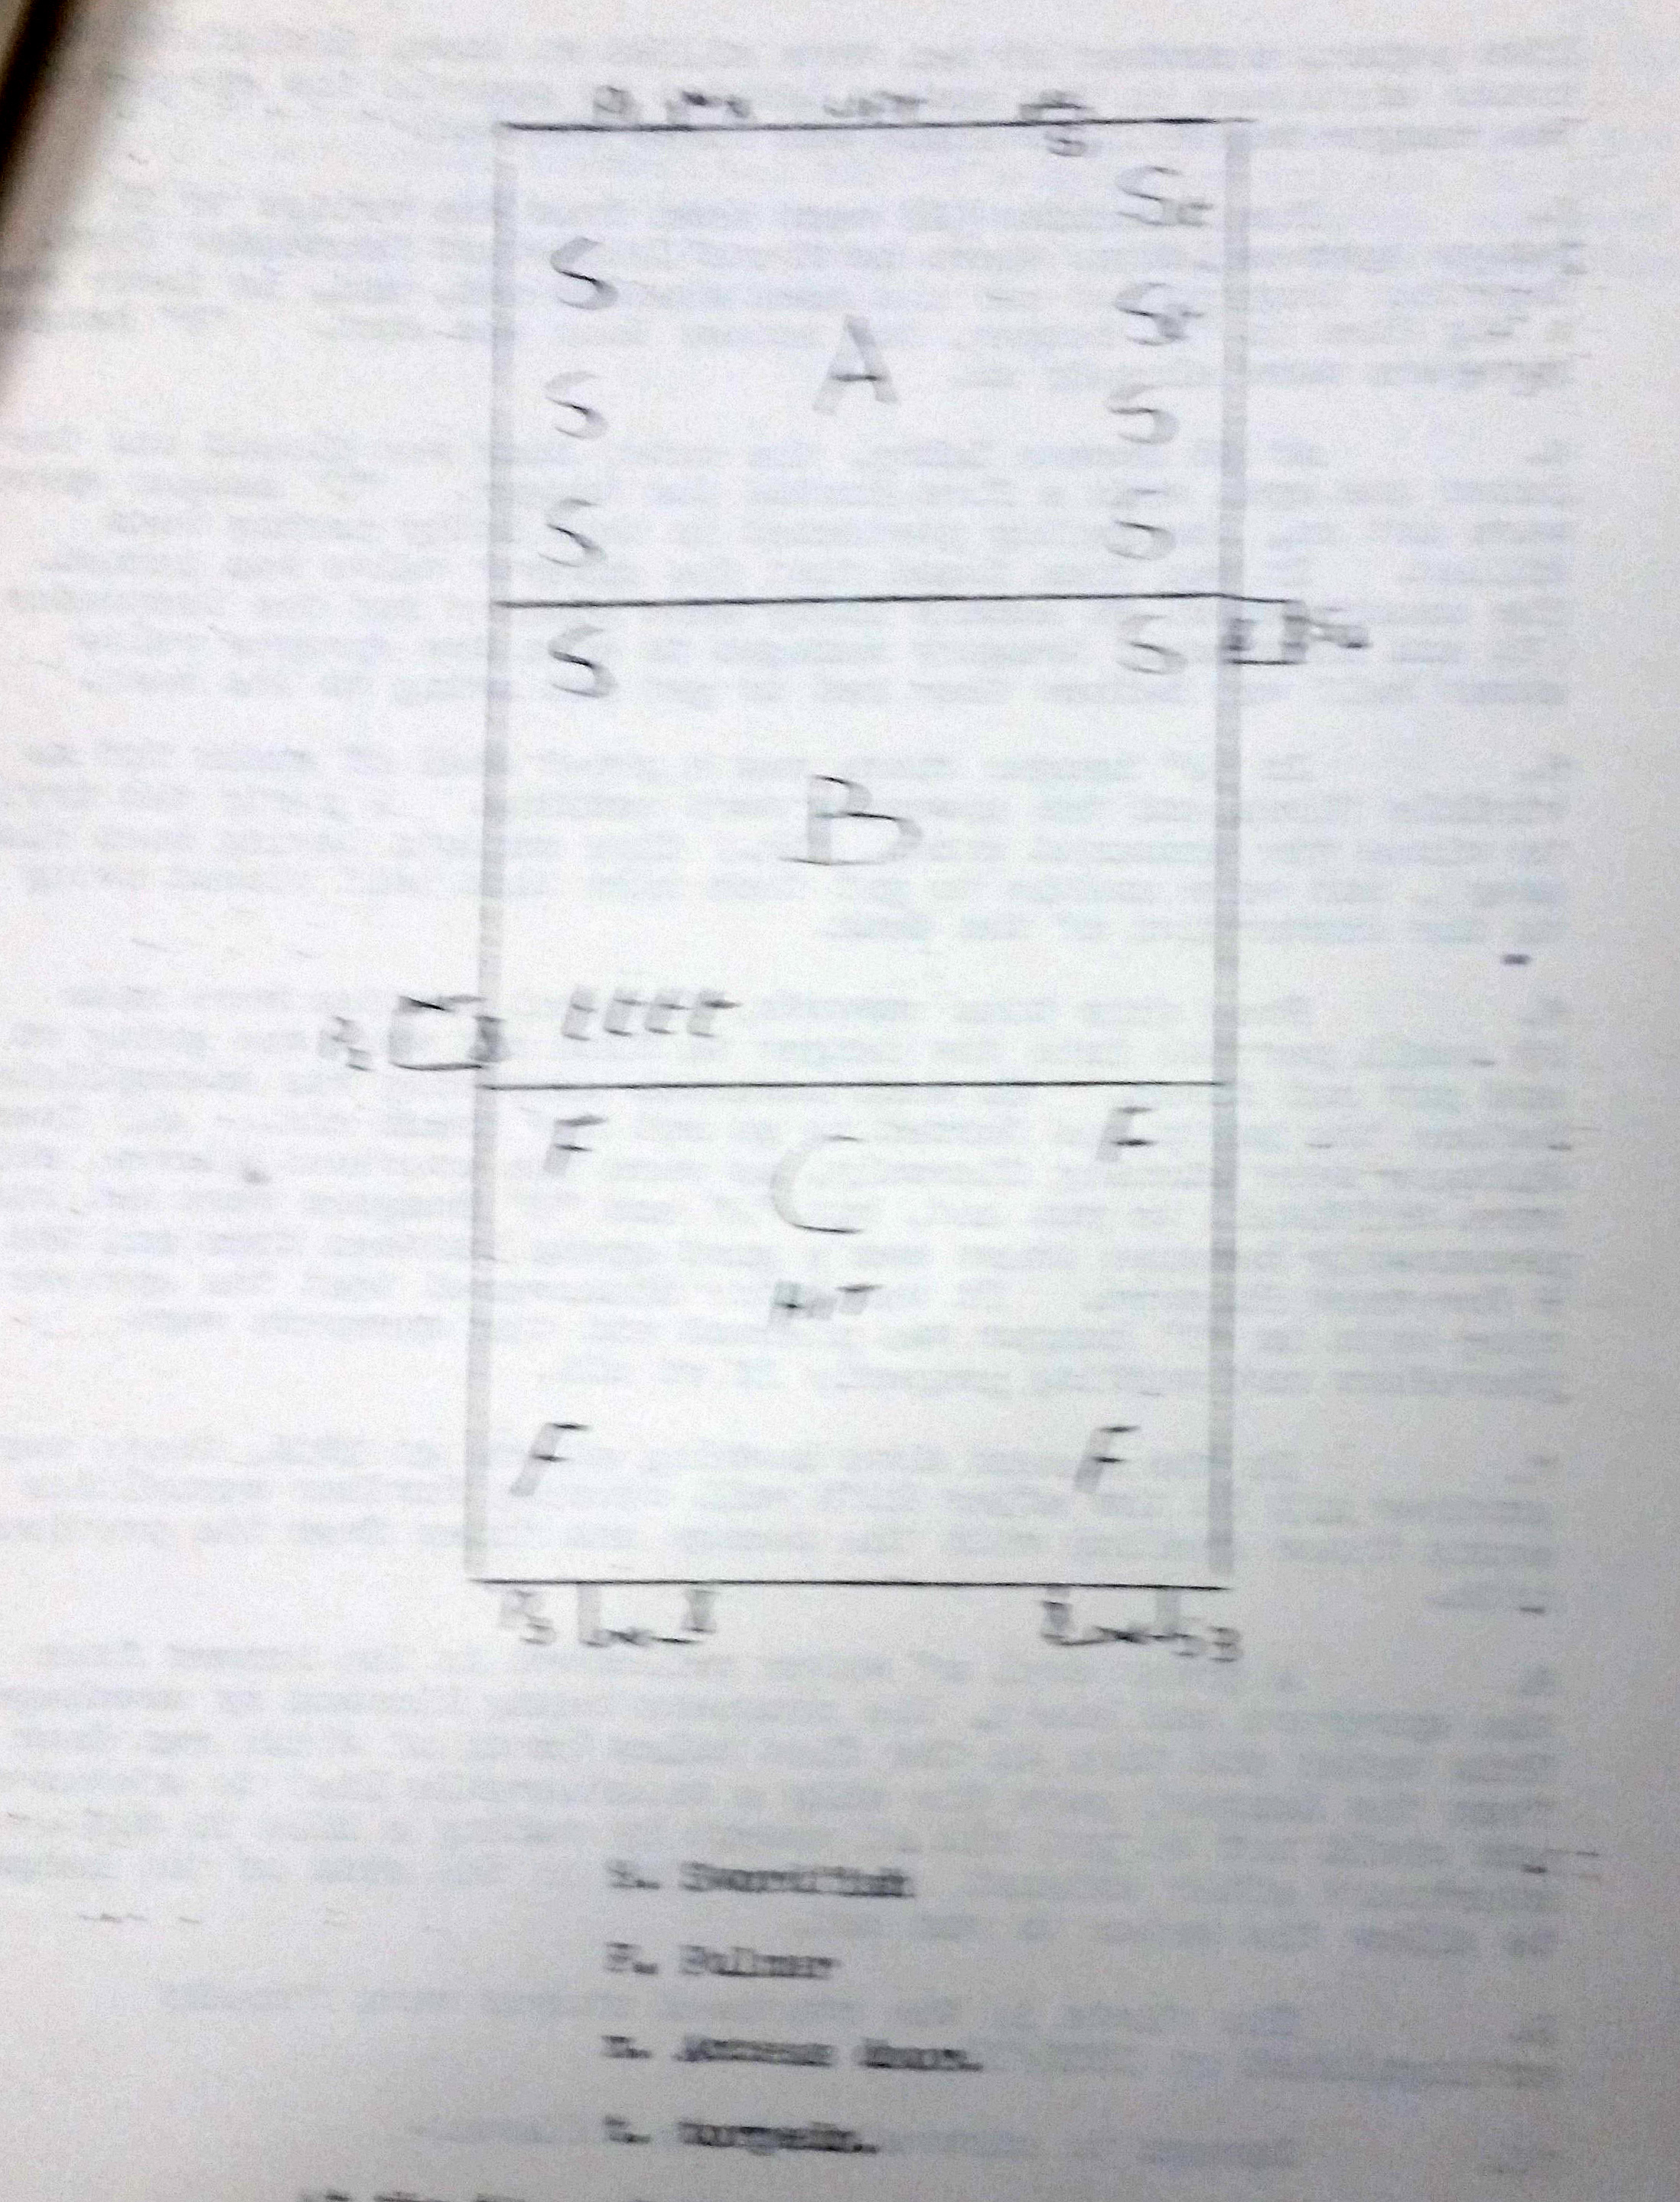 """This unfortunately blurry photo of a page from HMS Illustrious' Captain's Proceedings Report for the action shows the positions of the aircraft in the hangar at the time of the attack. """"S"""" stands for Swordfish, """"St"""" stands for Swordfish armed with a torpedo, """"t"""" represents the position of 'action ready' torpedo reserves and """"F"""" locates the Fulmars."""